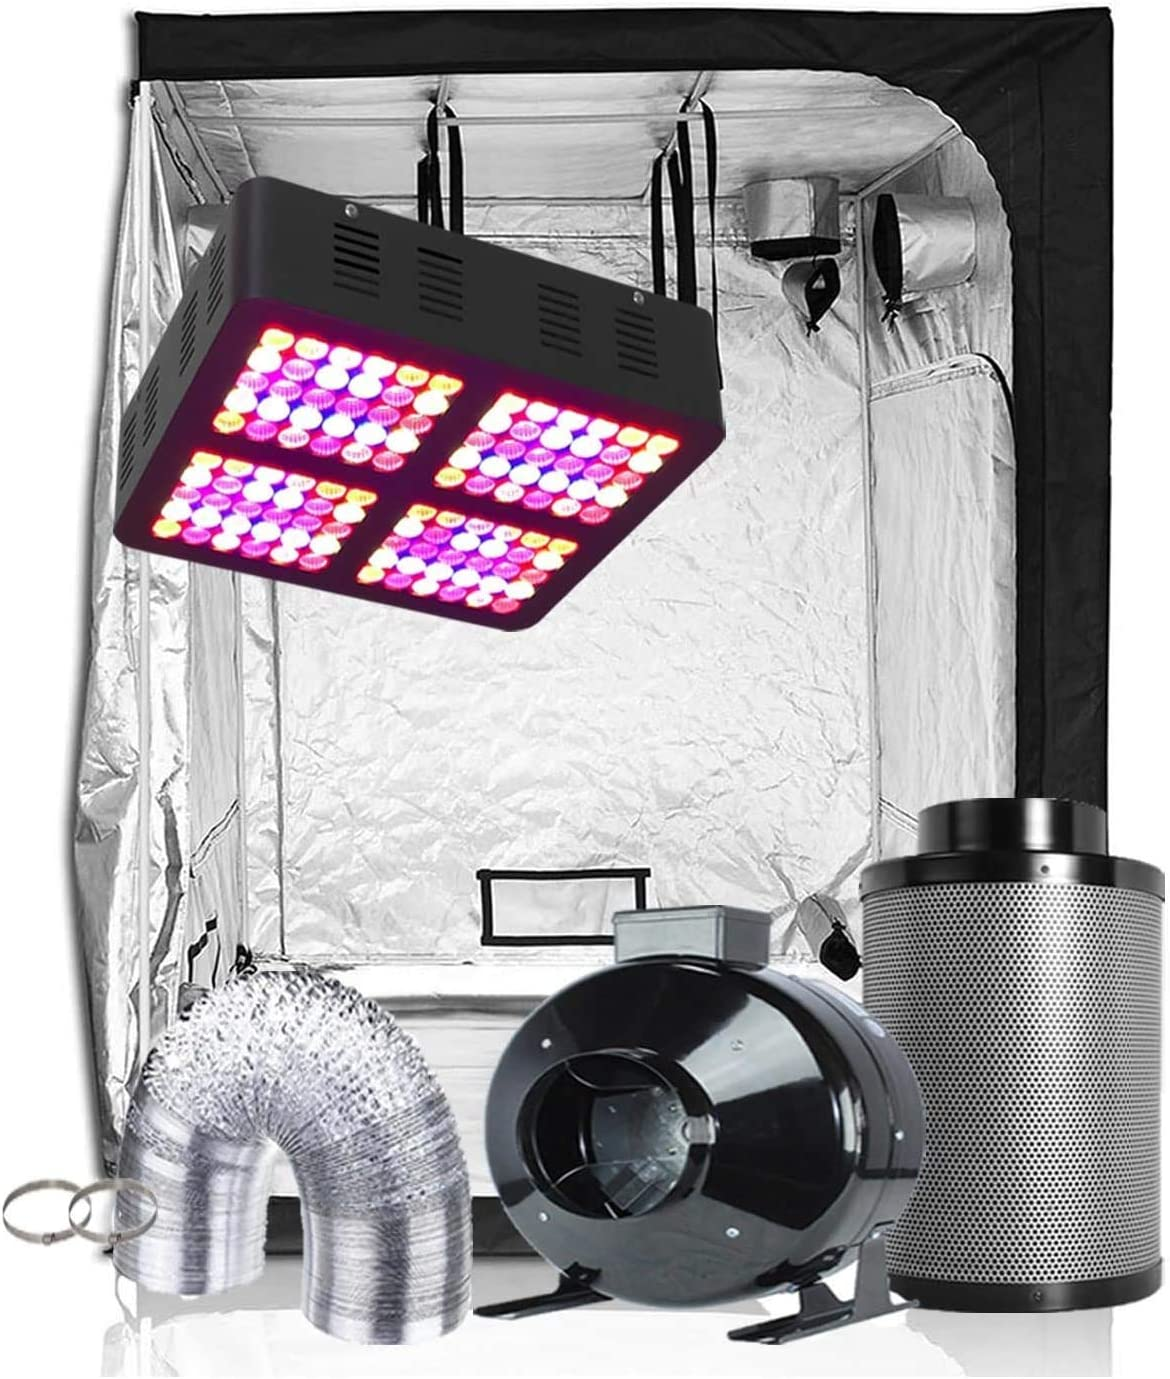 Plant House Indoor Complete Grow Tent Kit with Horticulture Lighting Group HLG 100 V2 4k Quantum Board LED Light, Fox Farm Potting Soil, Fan Kit, Fabric Pots and Accessories